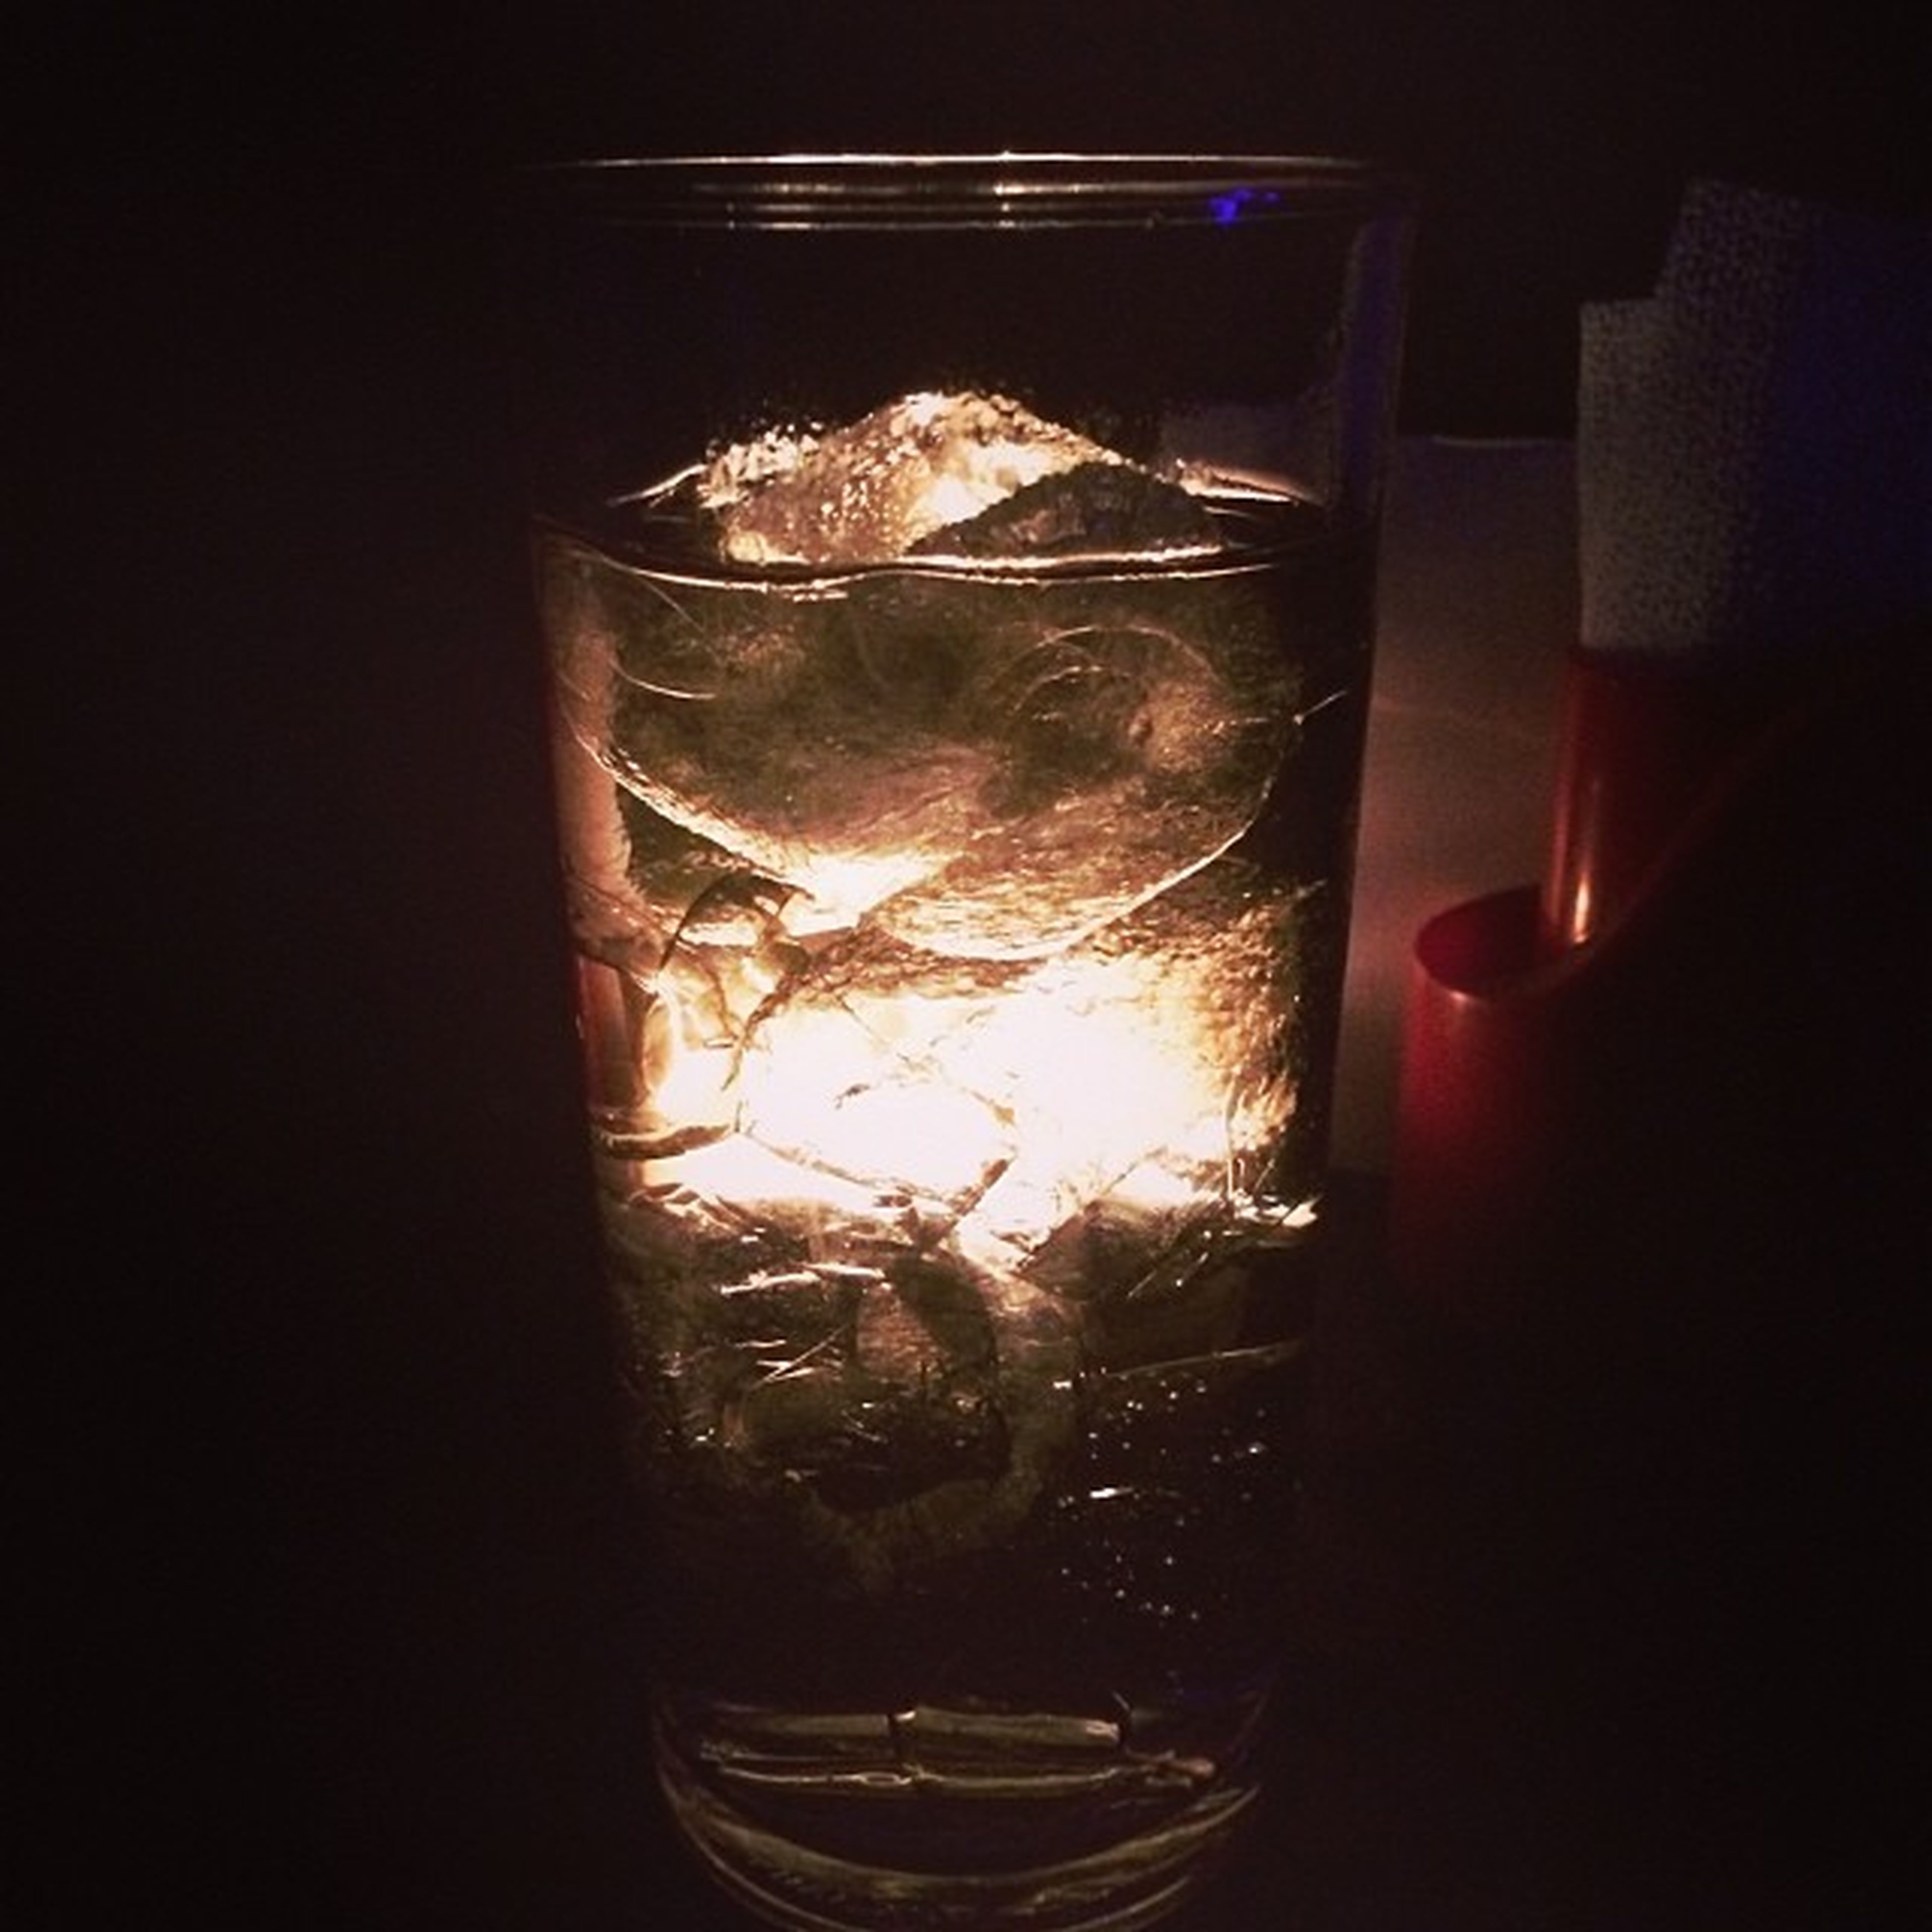 indoors, glass - material, transparent, window, dark, reflection, close-up, darkroom, glass, glowing, illuminated, water, no people, copy space, burning, night, light - natural phenomenon, drinking glass, black background, home interior